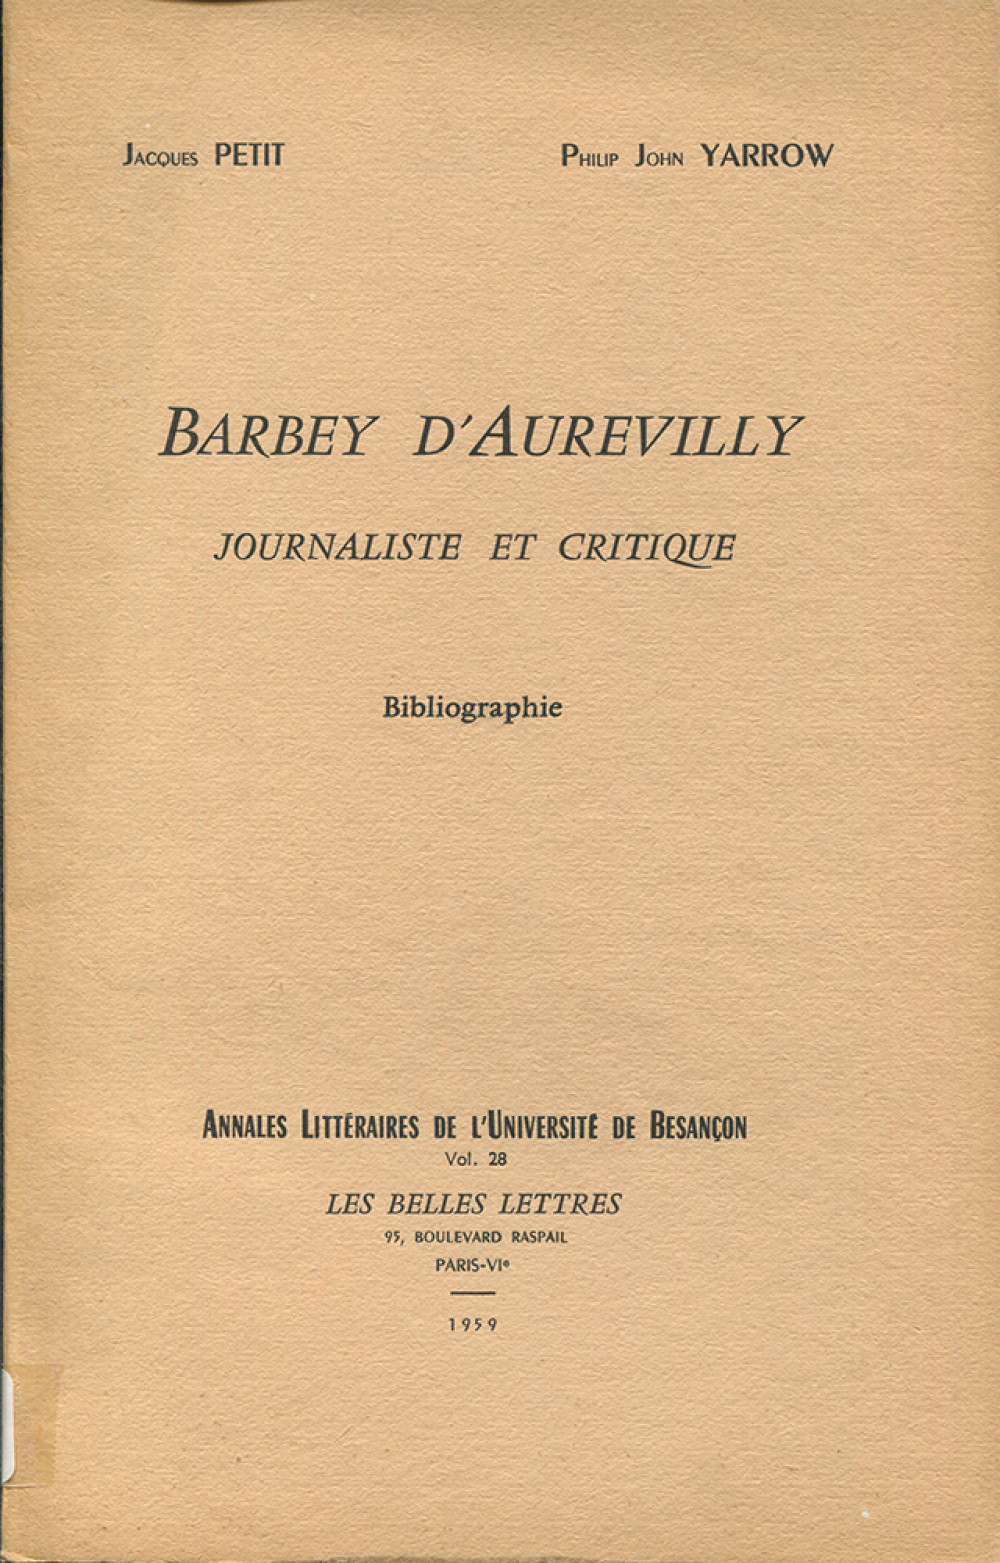 Barbey d'Aurevilly. Journaliste et critique (Bibliographie)